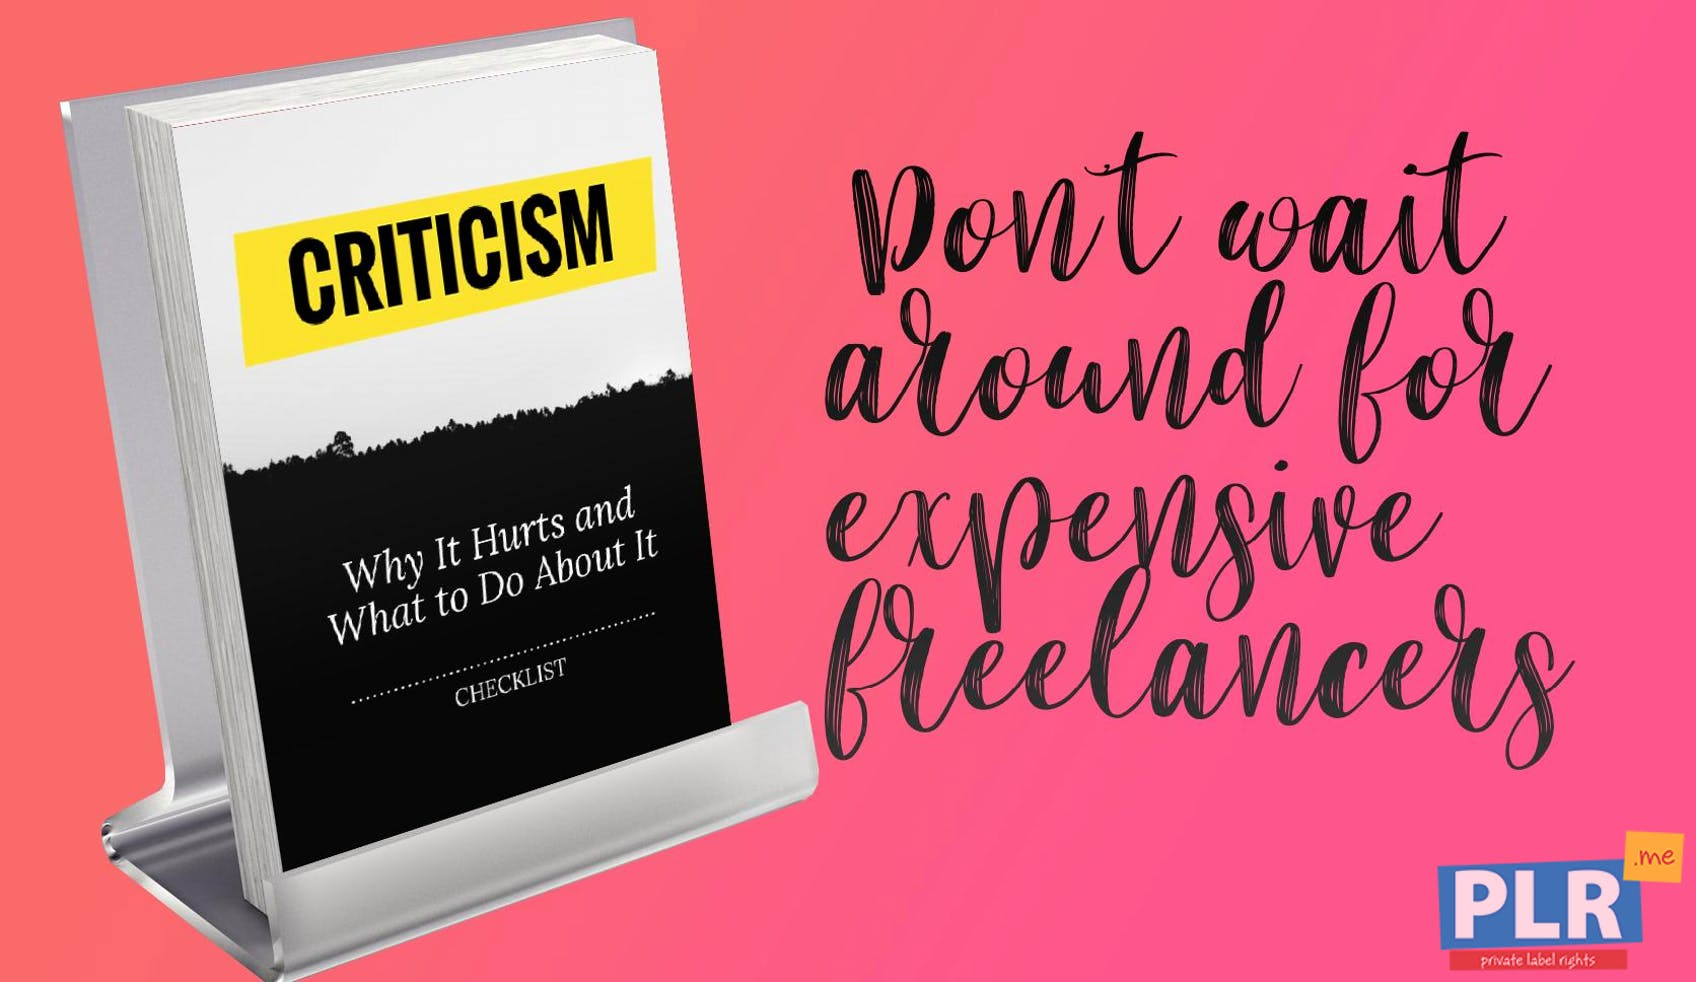 Criticism: Why It Hurts And What To Do About It - Checklist